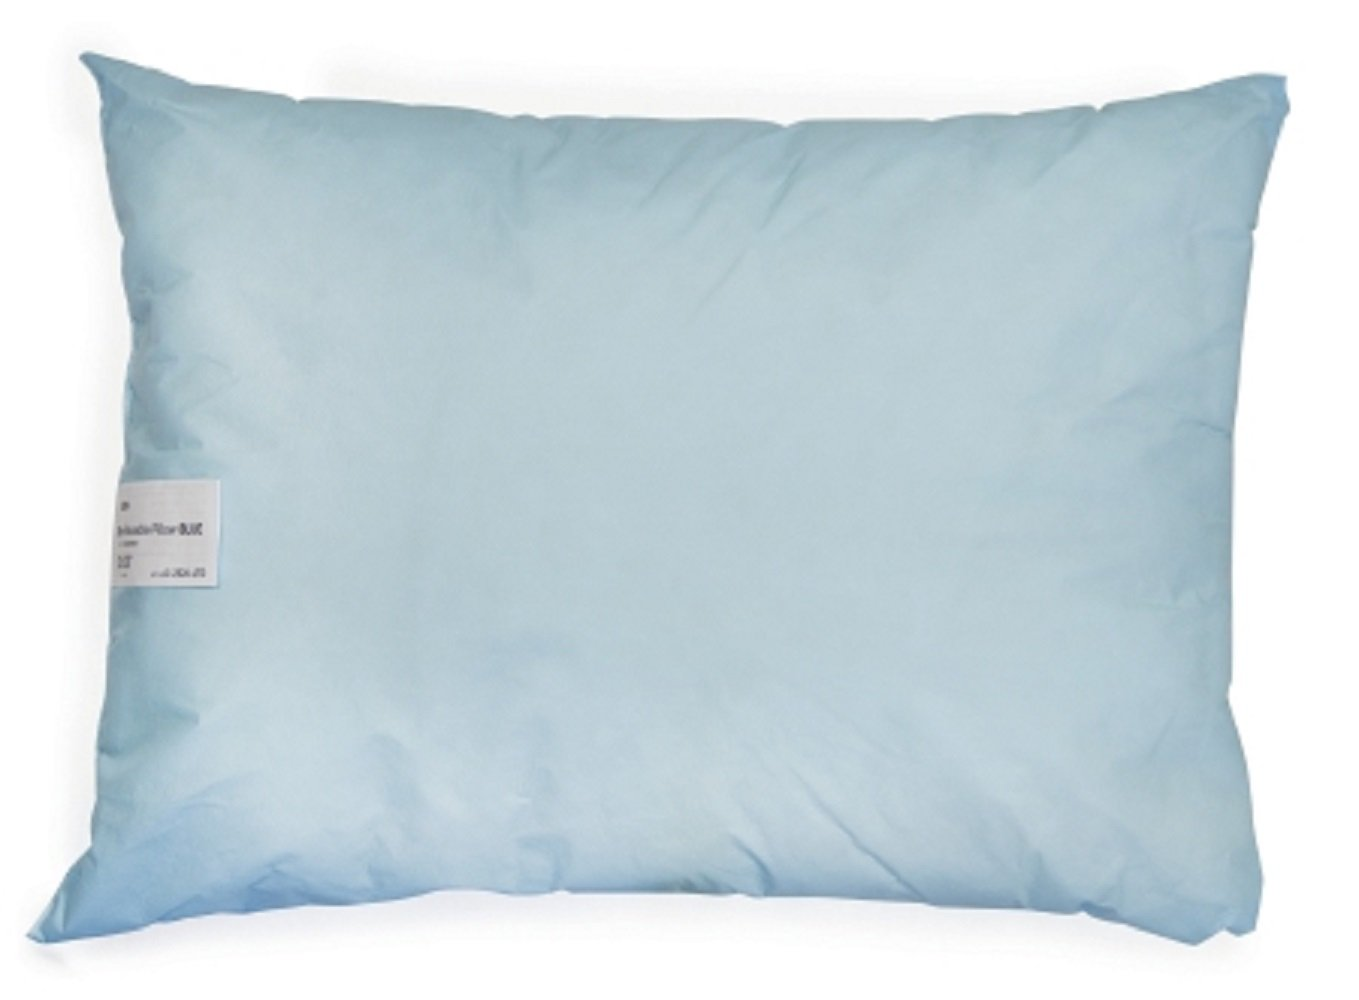 McKesson - Bed Pillow - 20 X 26 Inch - Blue - Reusable - Olefin Cover - 12/Case - McK